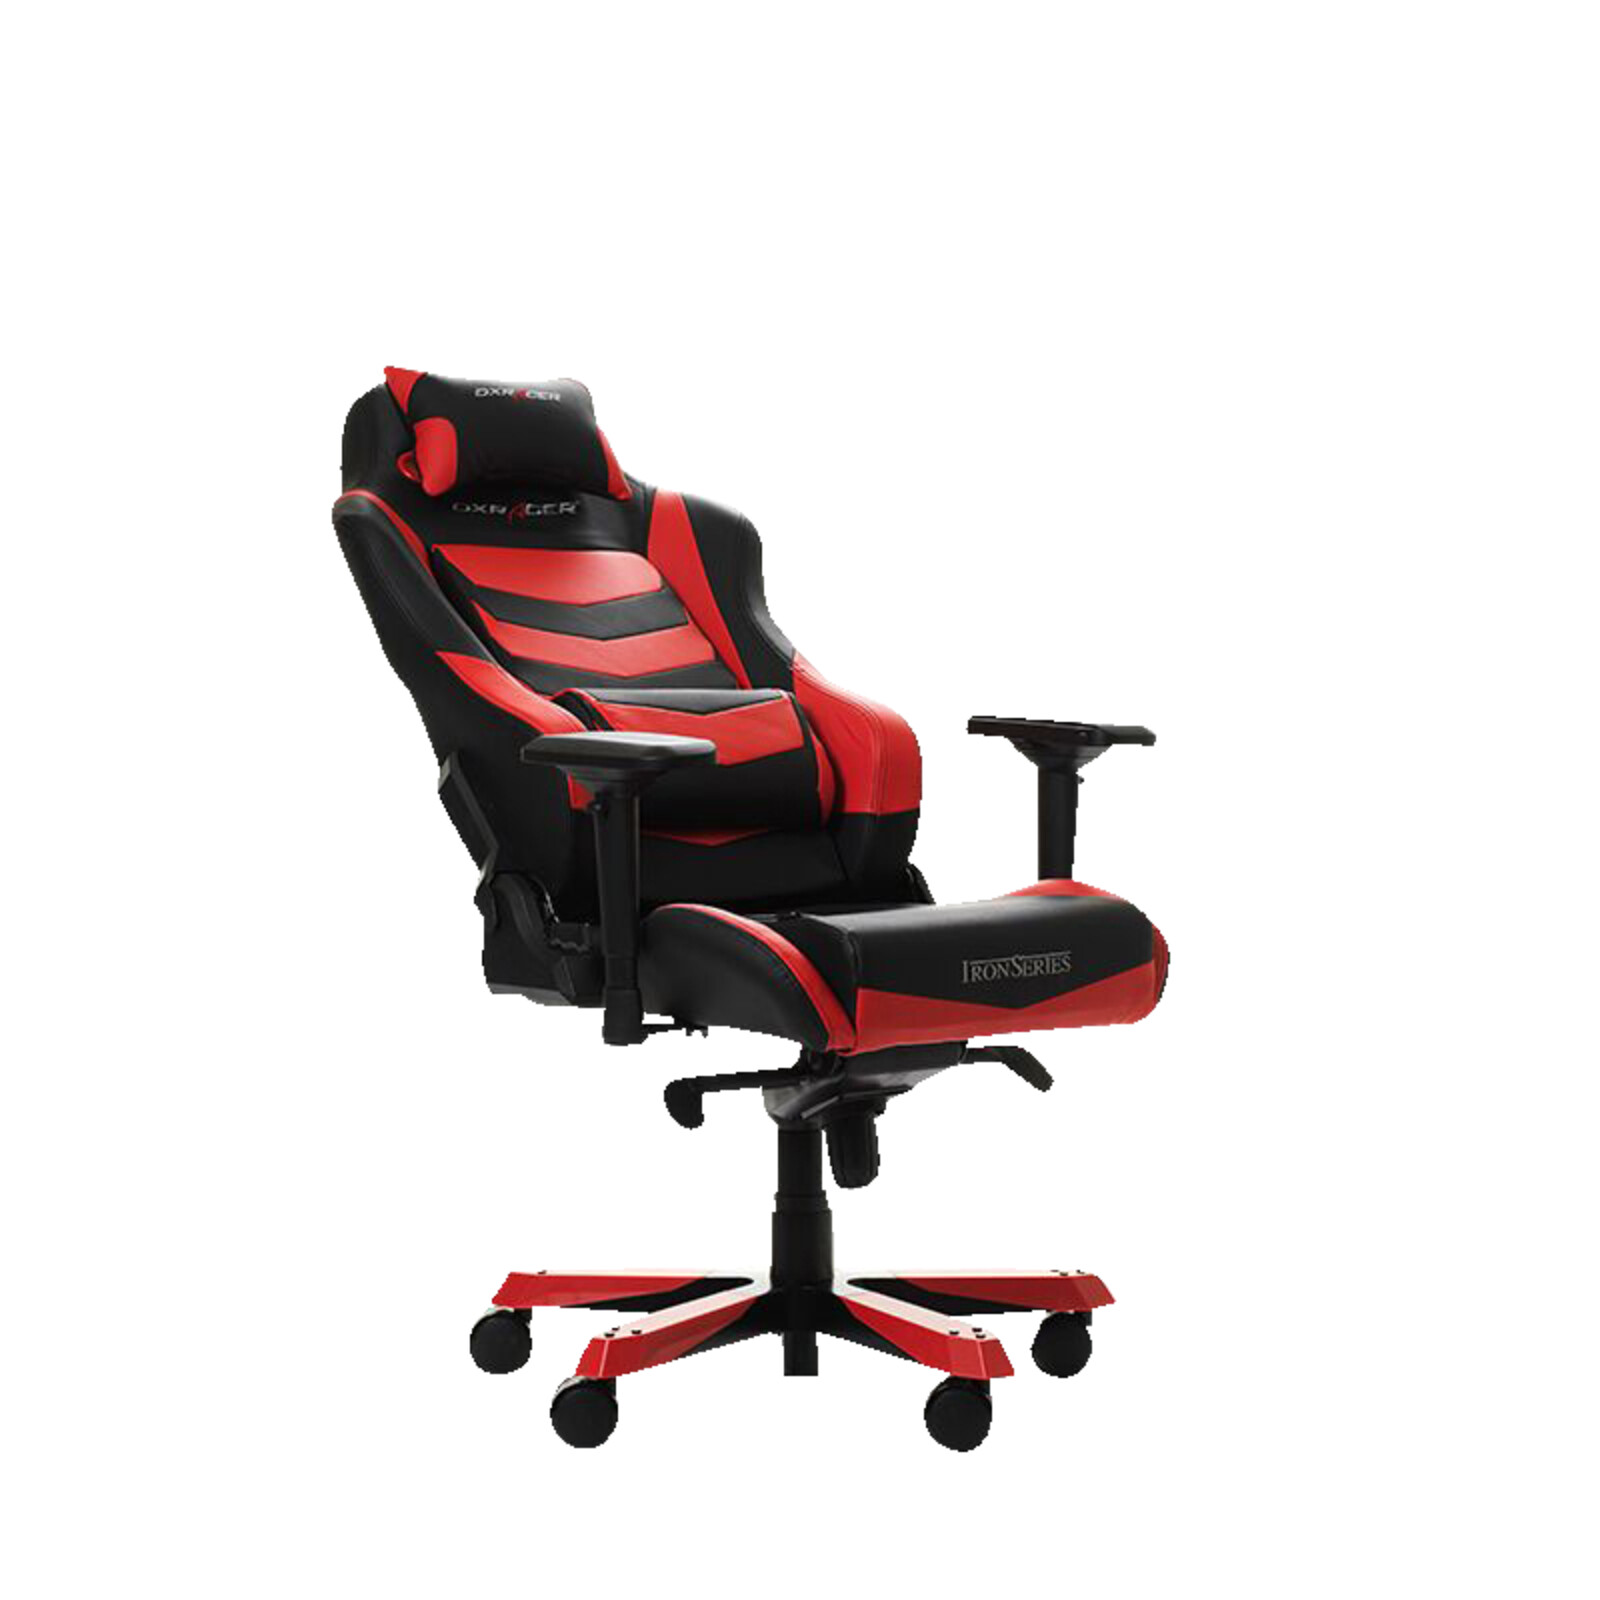 Dxracer Sessel Details Zu Dxracer Iron I166 Gaming Chair Black Red Gaming Stuhl Schwarz Rot